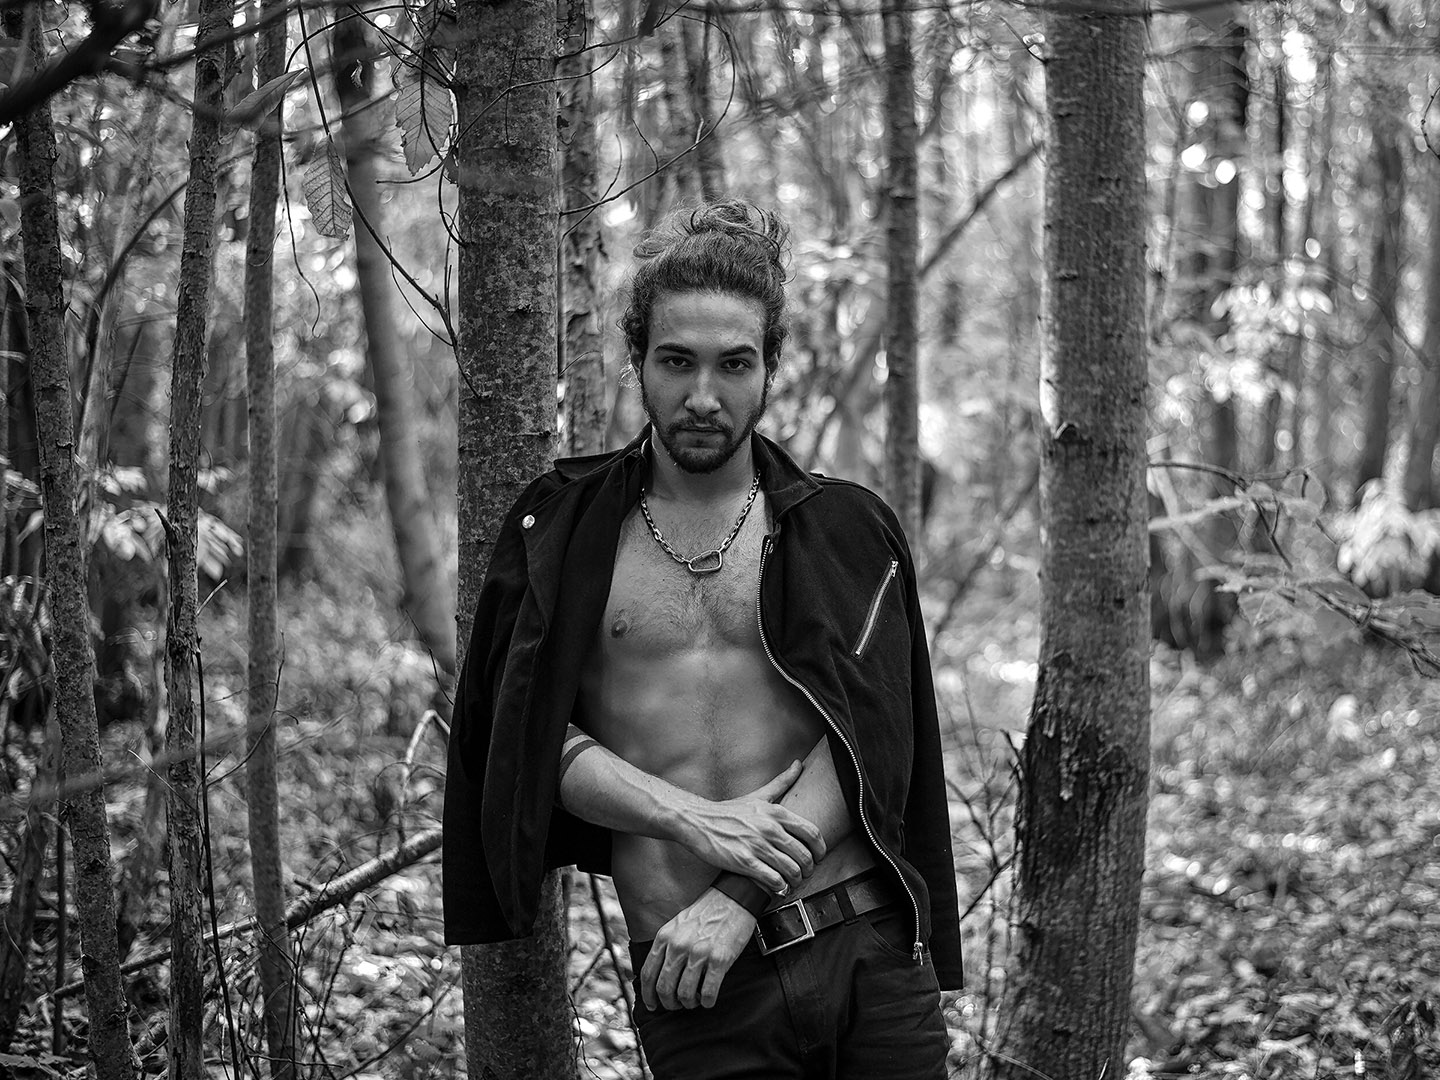 Categorie: Fashion, Portrait - Photographer: IRENE FITTIPALDI - Model: EMANUELE SALUSTRI - Location: Lago di Nemi, Città Metropolitana di Roma, Italia